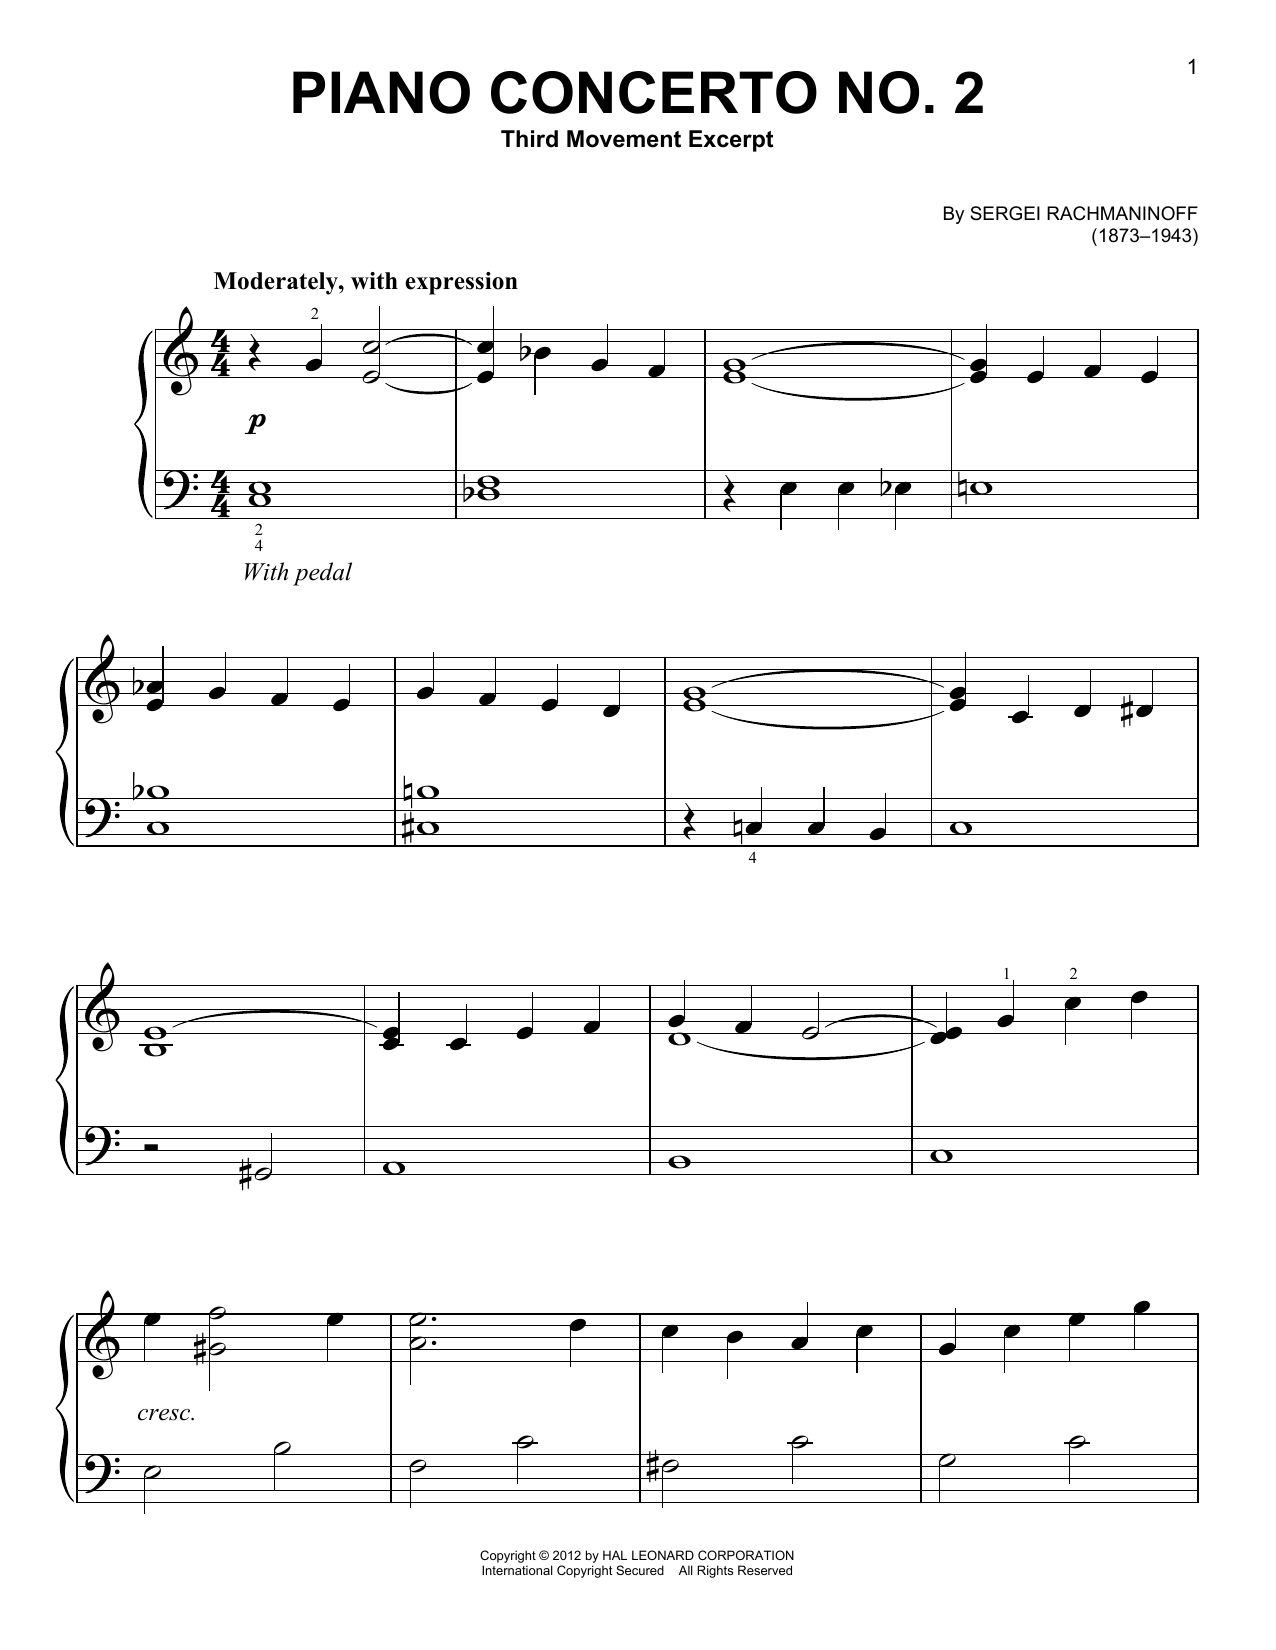 Download Sergei Rachmaninoff 'Piano Concerto No. 2, Third Movement Excerpt' Digital Sheet Music Notes & Chords and start playing in minutes